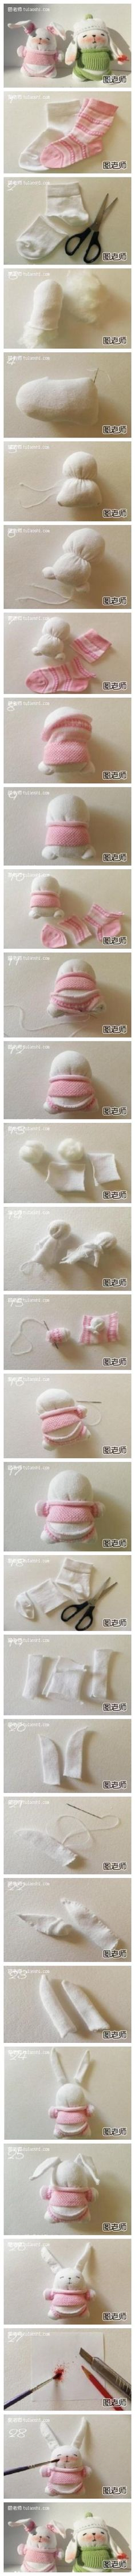 How to make cute DIY bunnies from old socks step by step tutorial instructions How to make cute DIY bunnies from old socks step by step tuto...